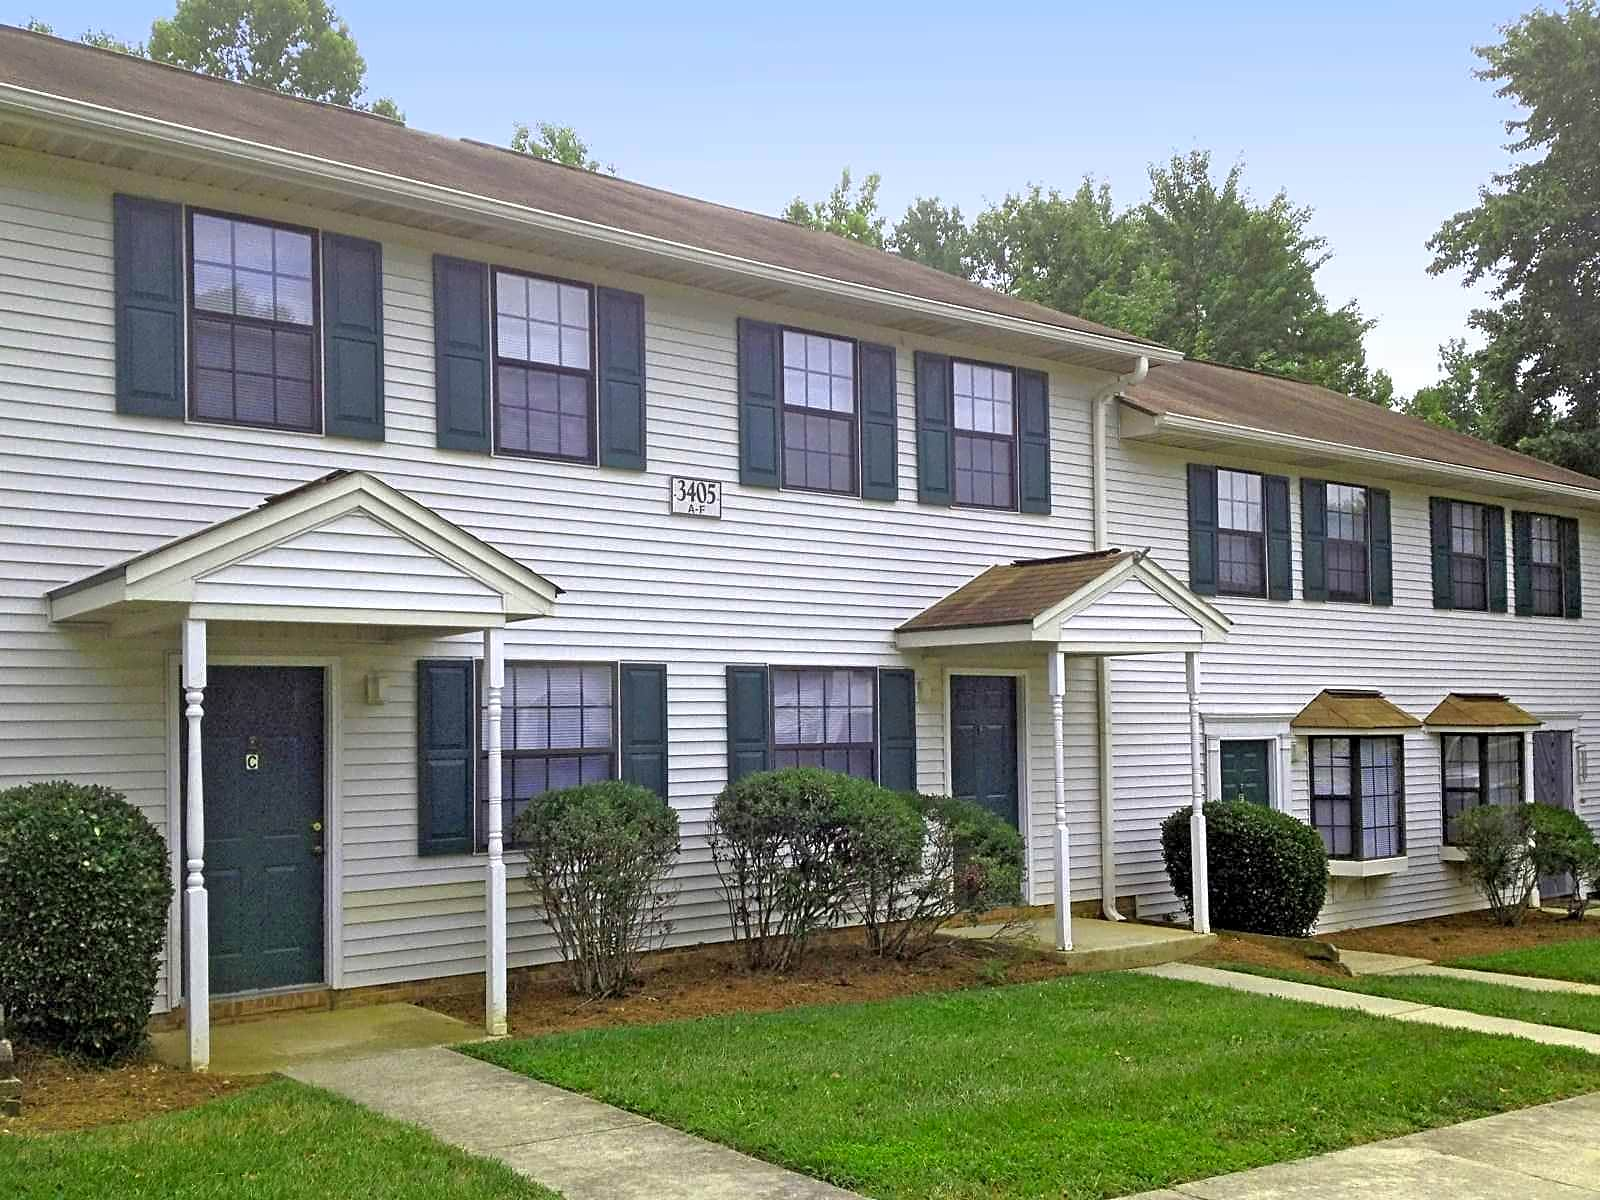 3 Bedroom Houses for Rent in Greensboro NC (8 rental homes ...